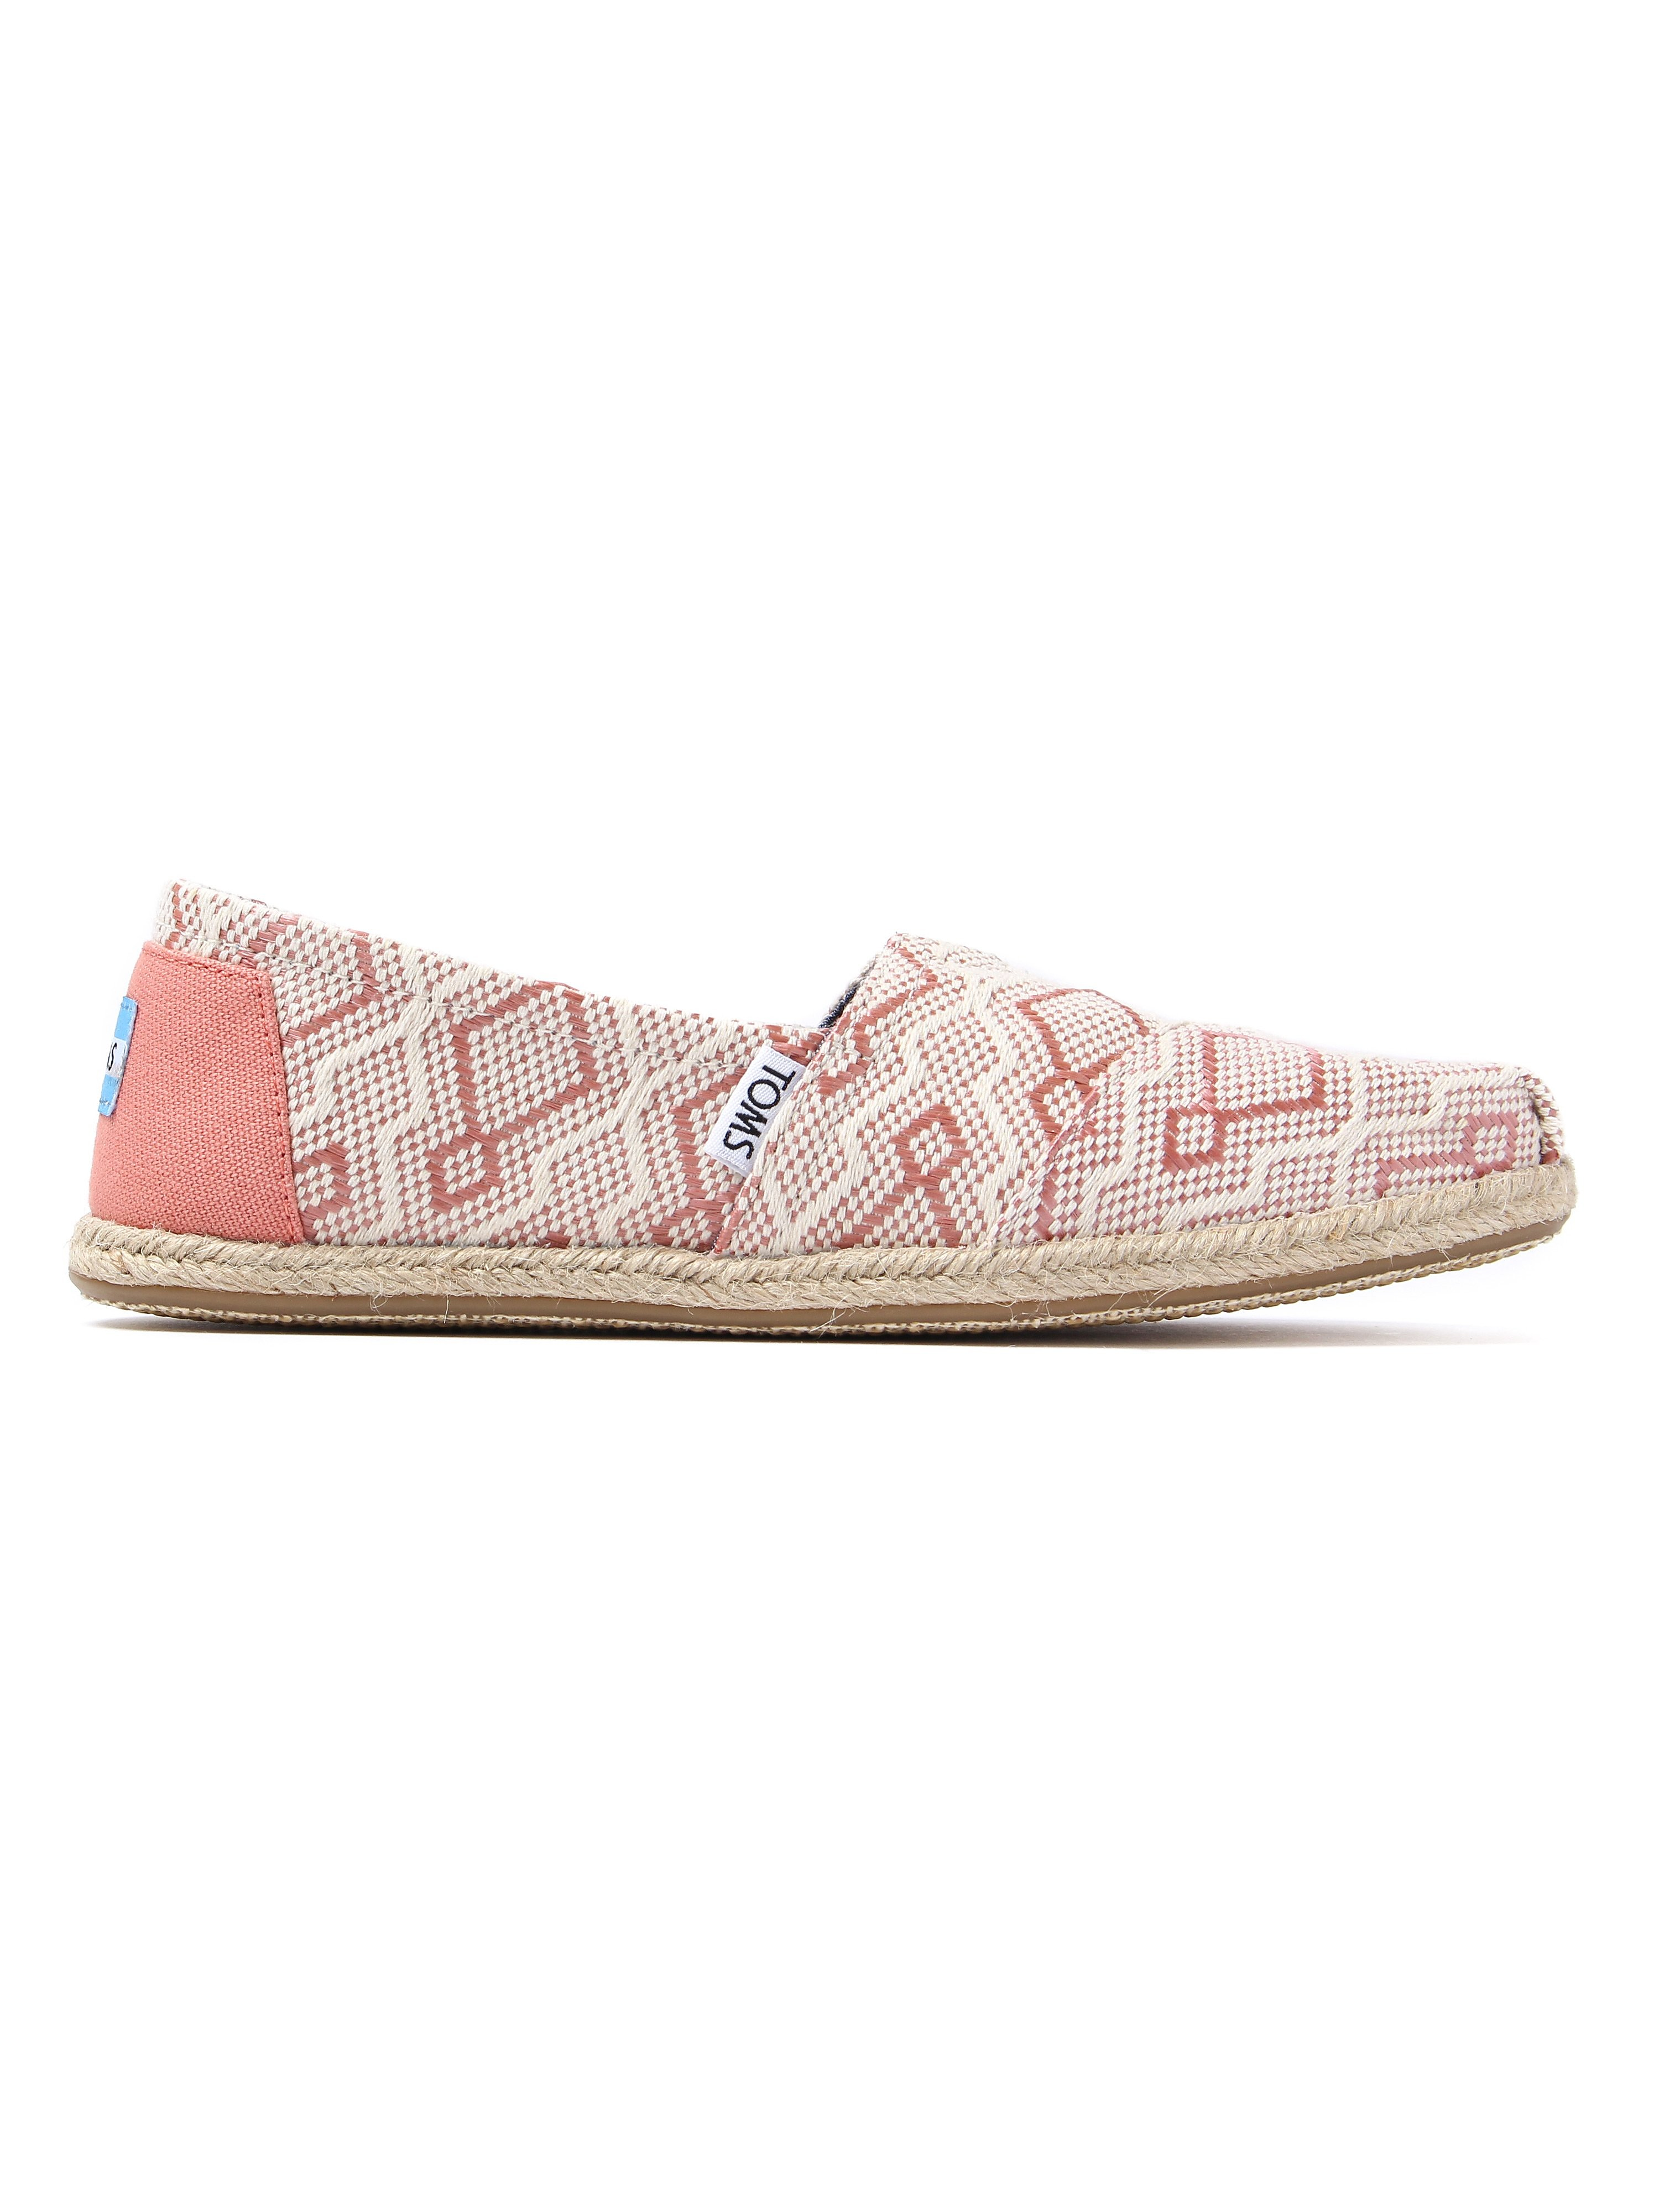 Toms Women's Classic Jacquard Rope Sole - Clay